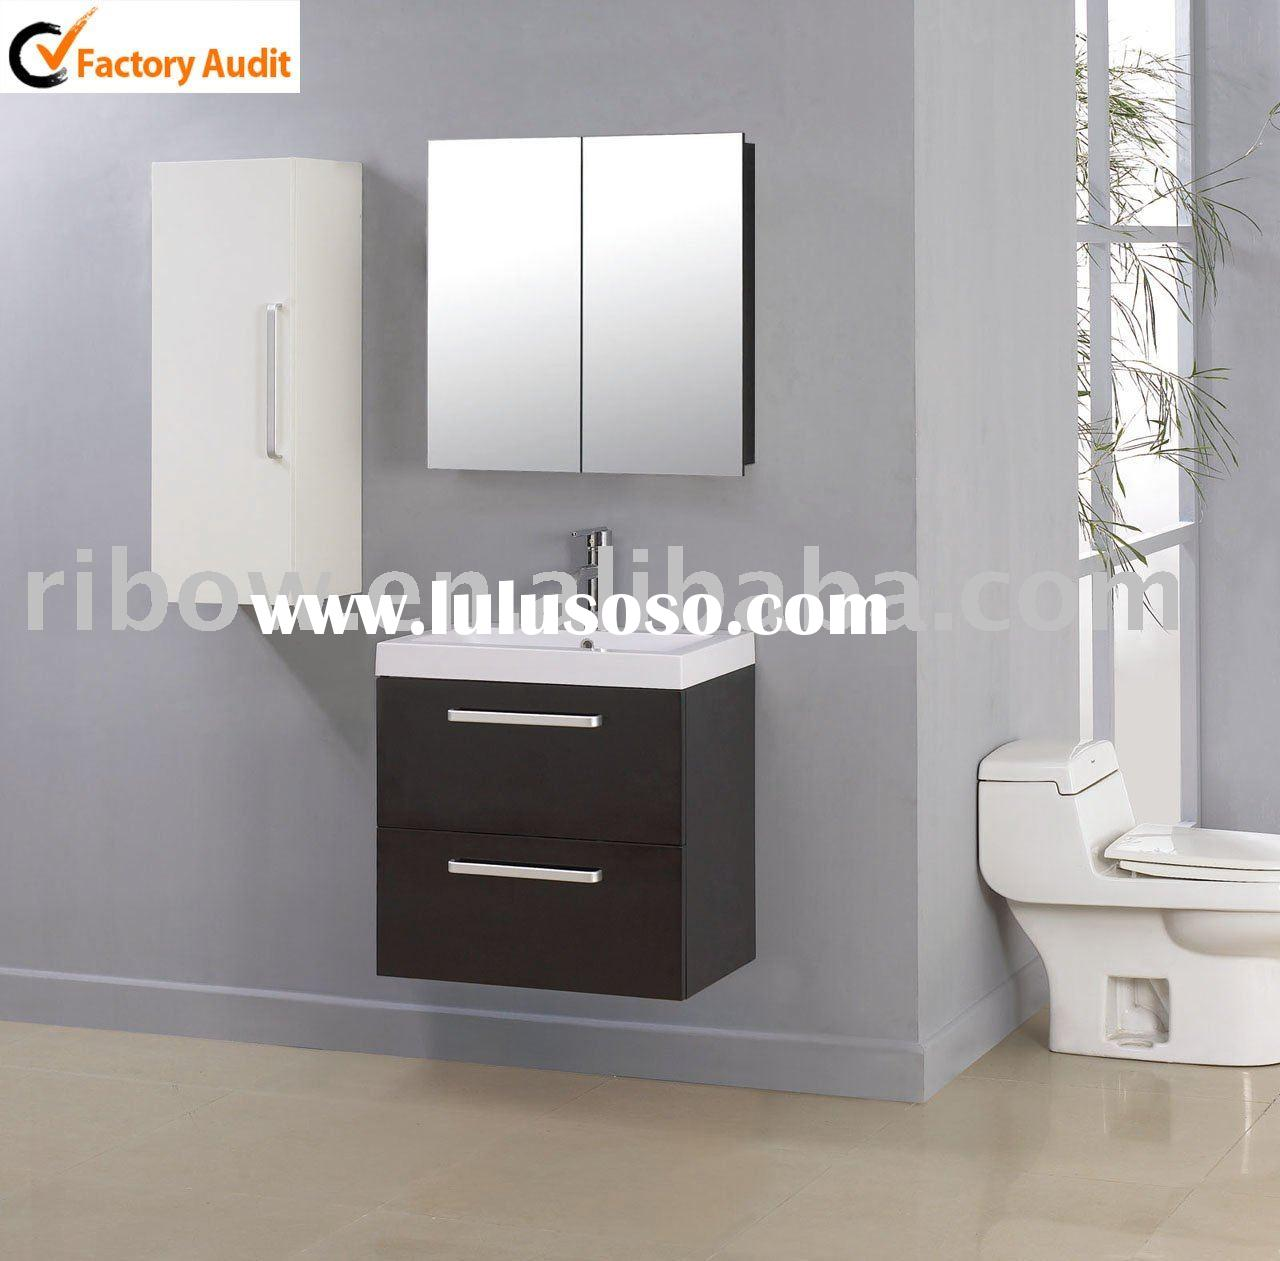 BATHROOM FURNITURE | WAYFAIR - VANITY, STORAGE, CABINETS  MIRRORS